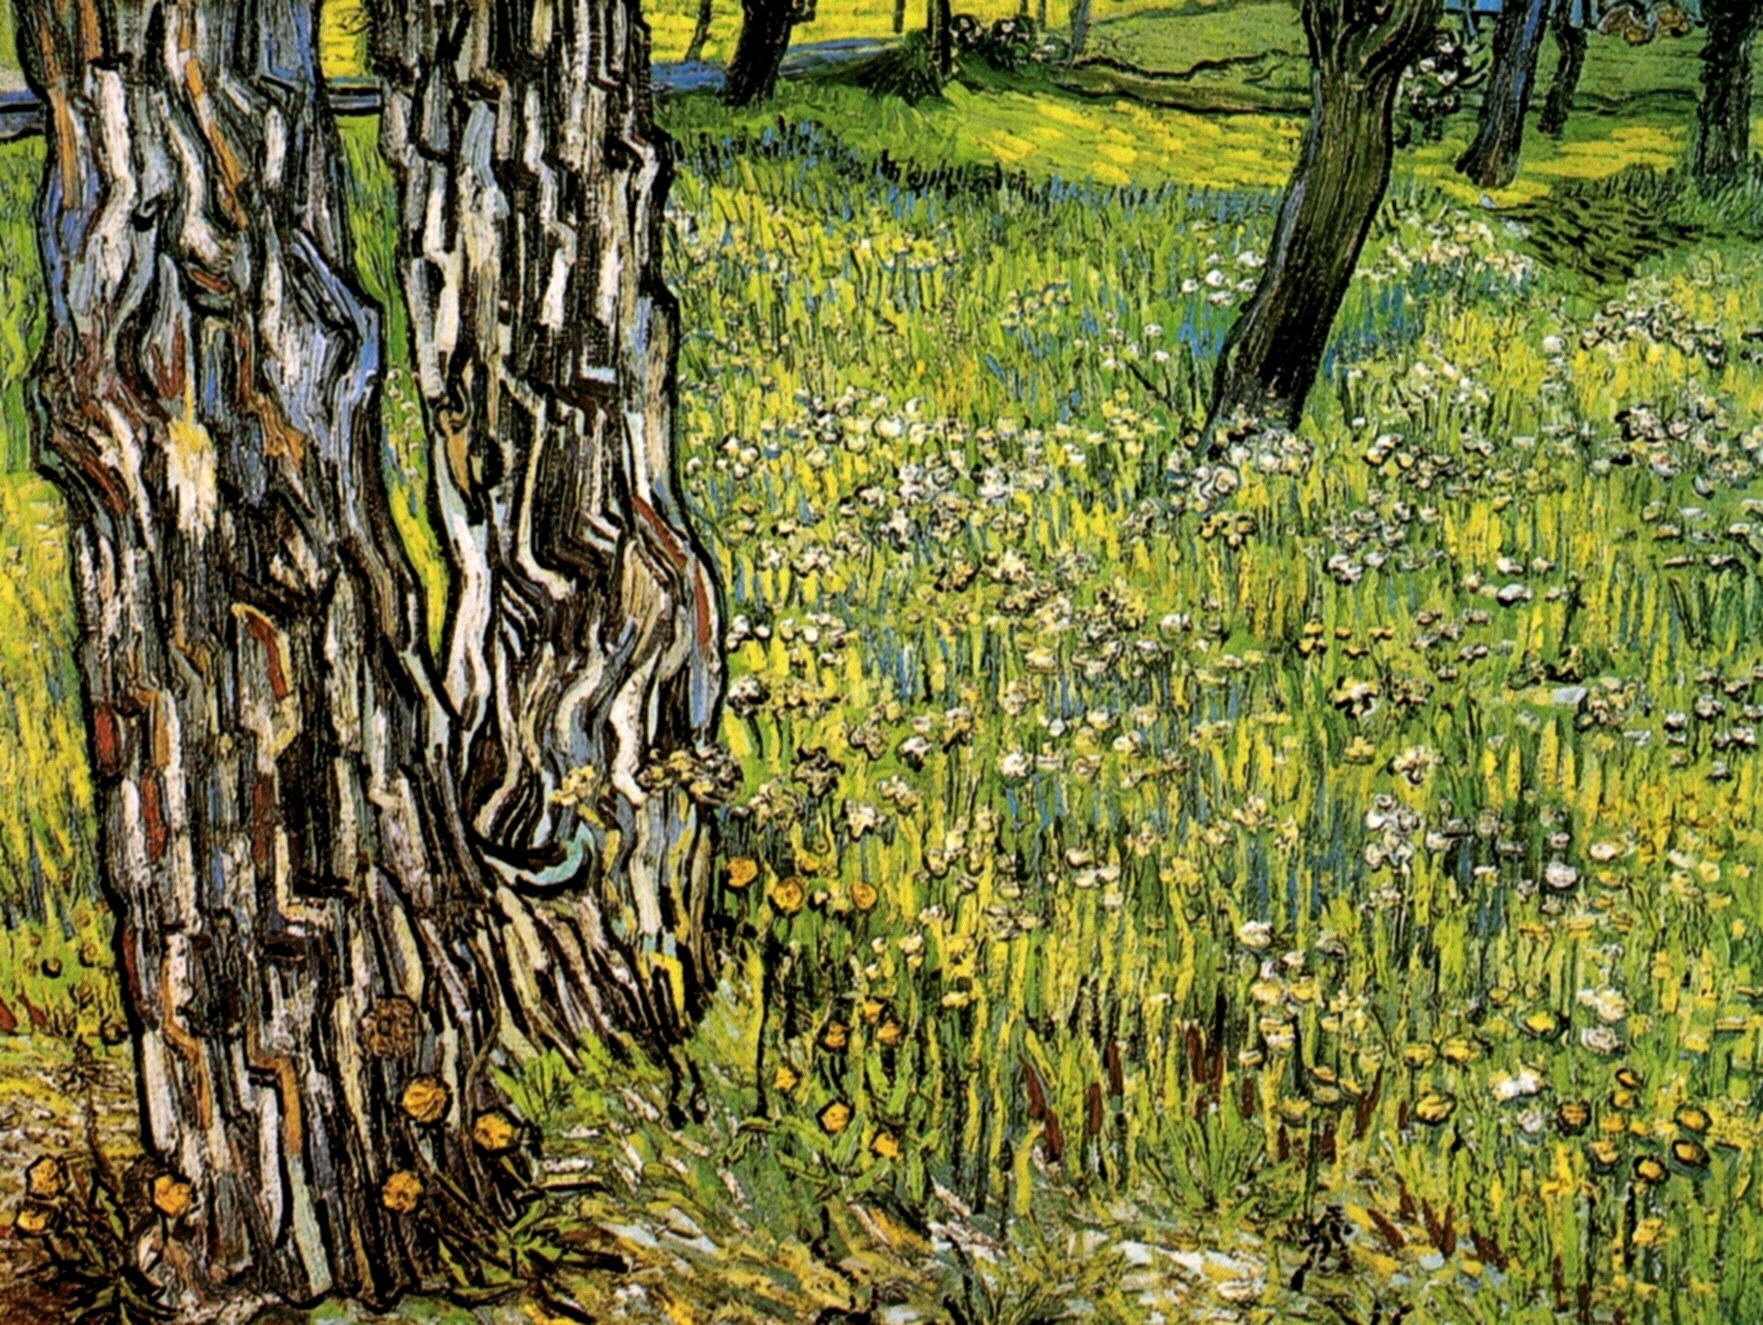 Pine Trees and Dandelions in the Garden of Saint-Paul Hospital 1890